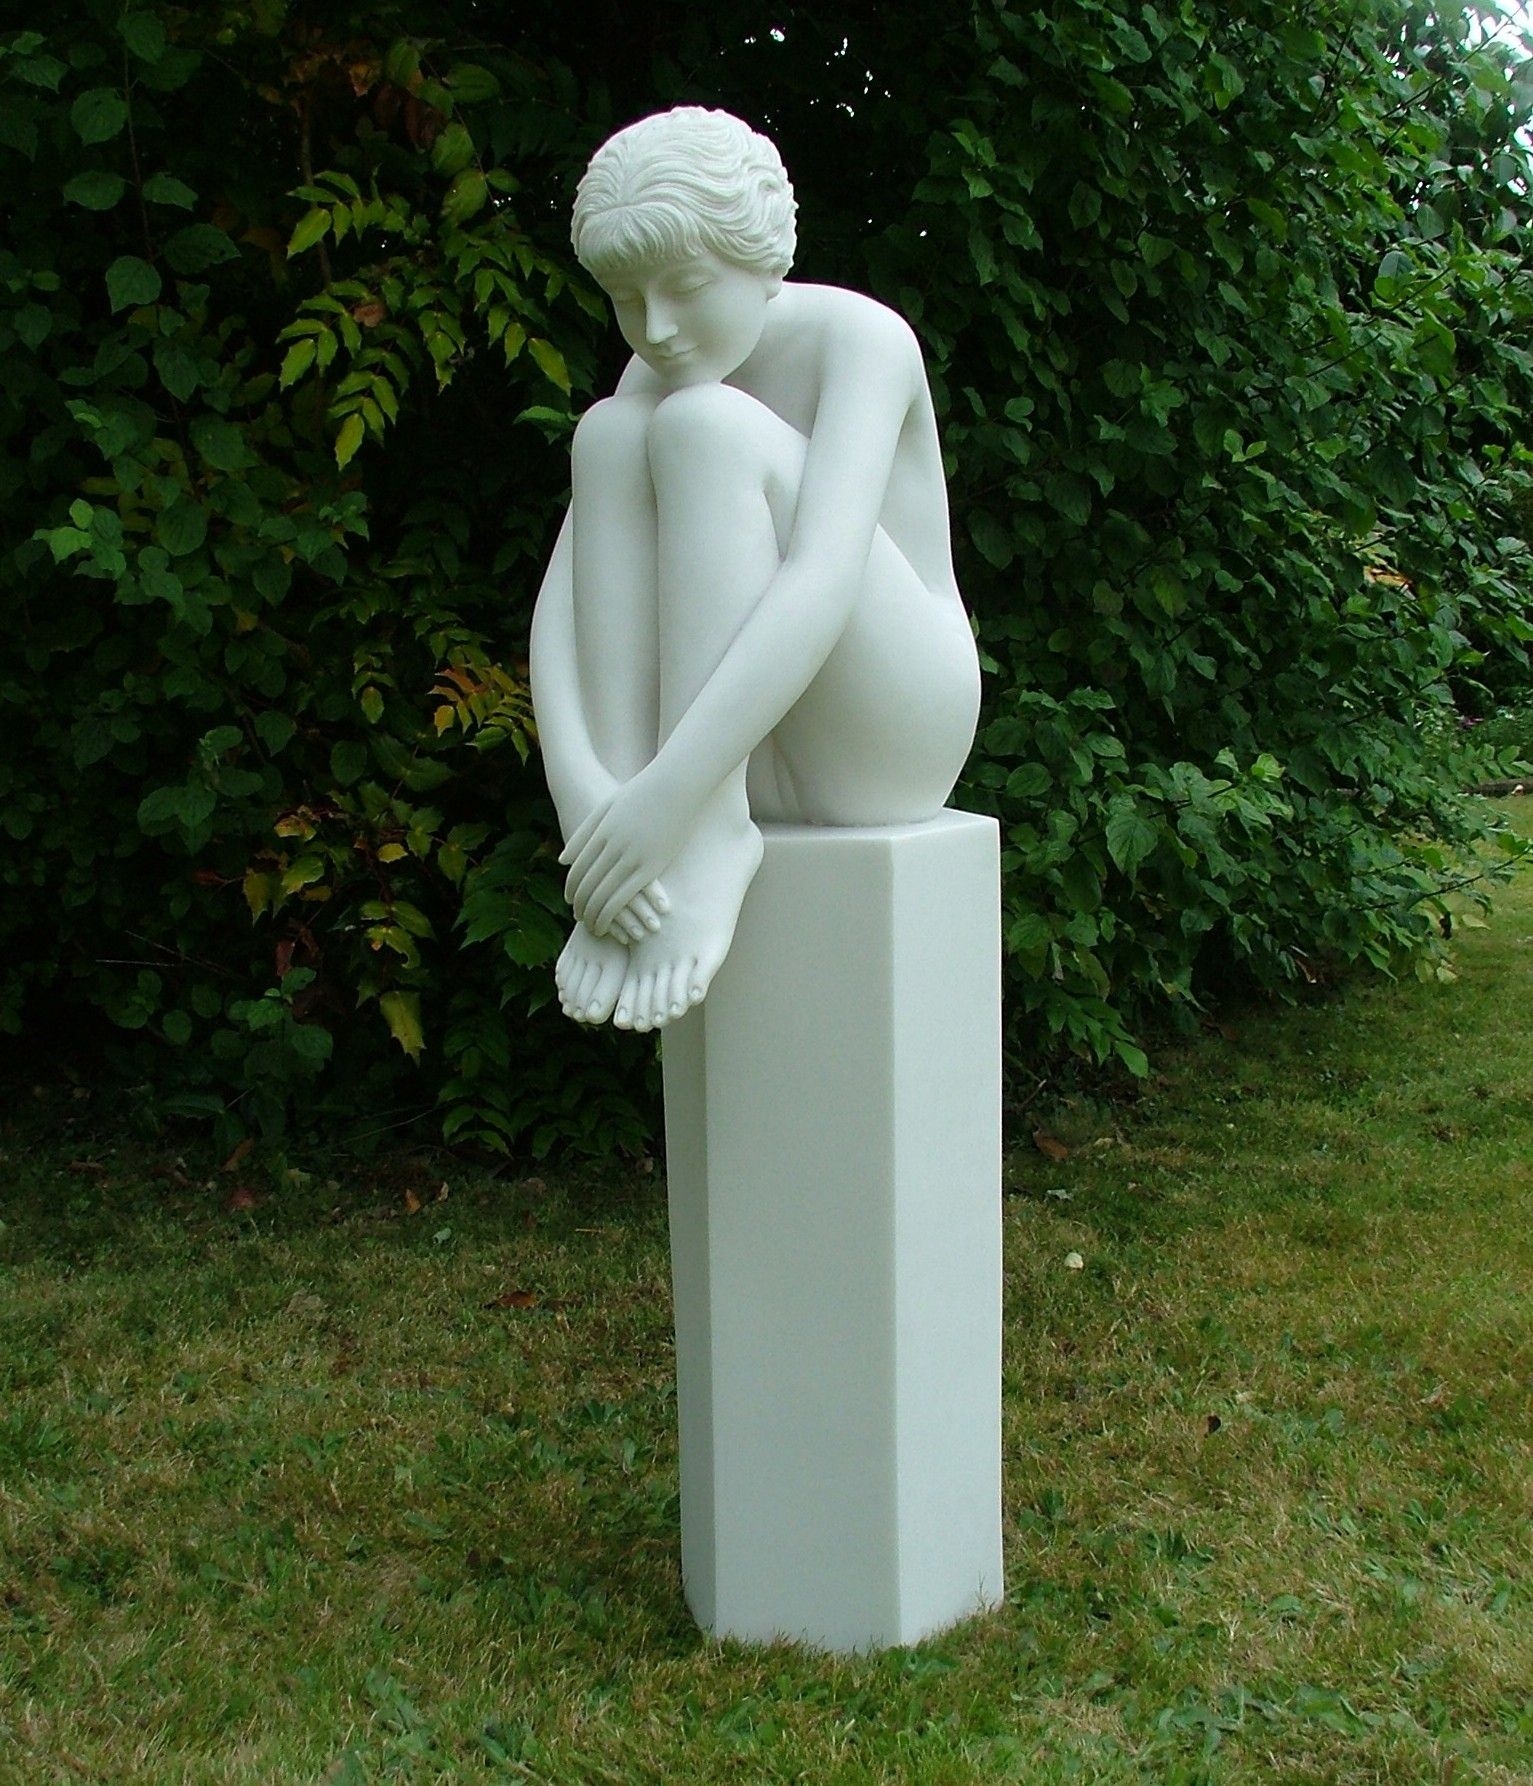 Charming Nude Melina On Column Sculpture Large Garden Statue. Buy Now At Http://